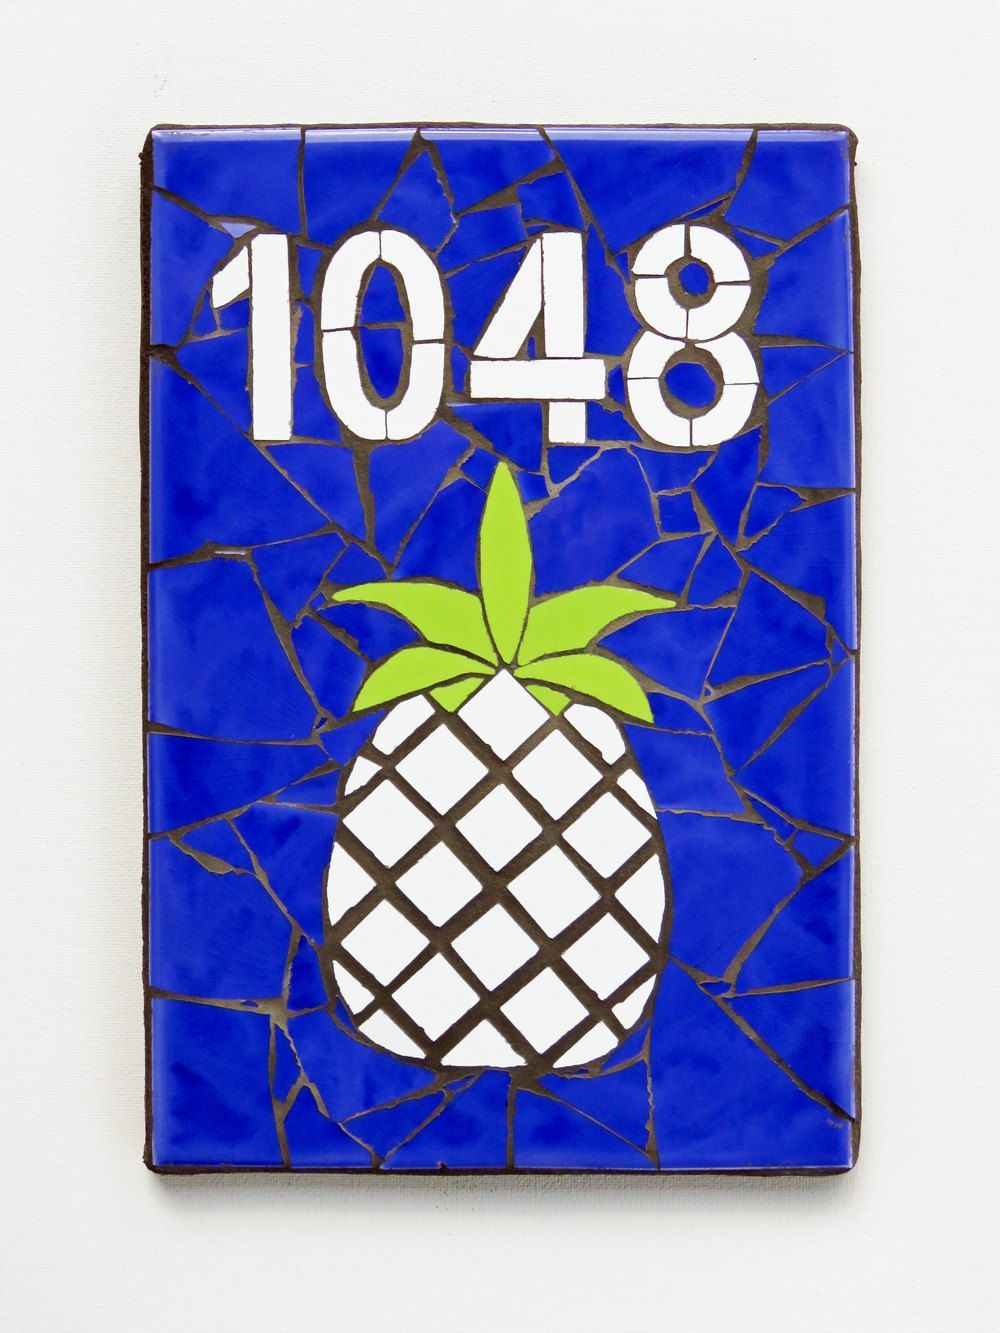 Mosaic house number plaque outdoor address number vertical mailbox mosaic house number plaque outdoor address number vertical mailbox number mosaic tile custom sign modern beach housewarming gift pineapple dailygadgetfo Image collections